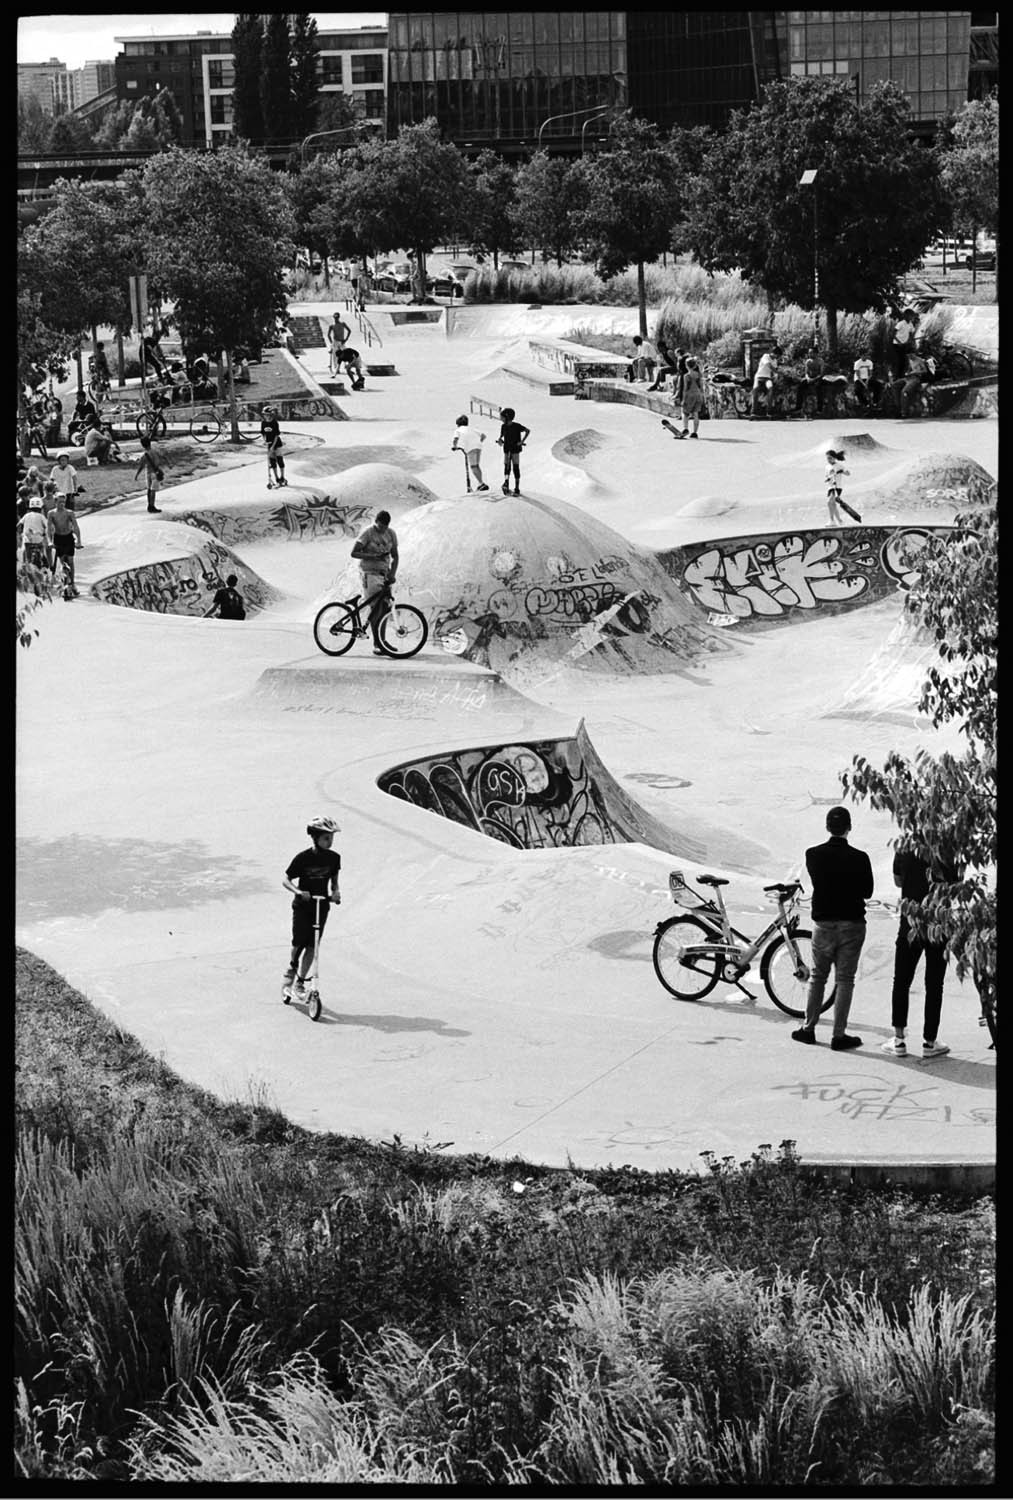 Frankfurt Skate Park. Leica M2, Leica-M Elmarit 90mm f/2.8, yellow filter #12. XTOL stock @20°C, box speed. Post in LR